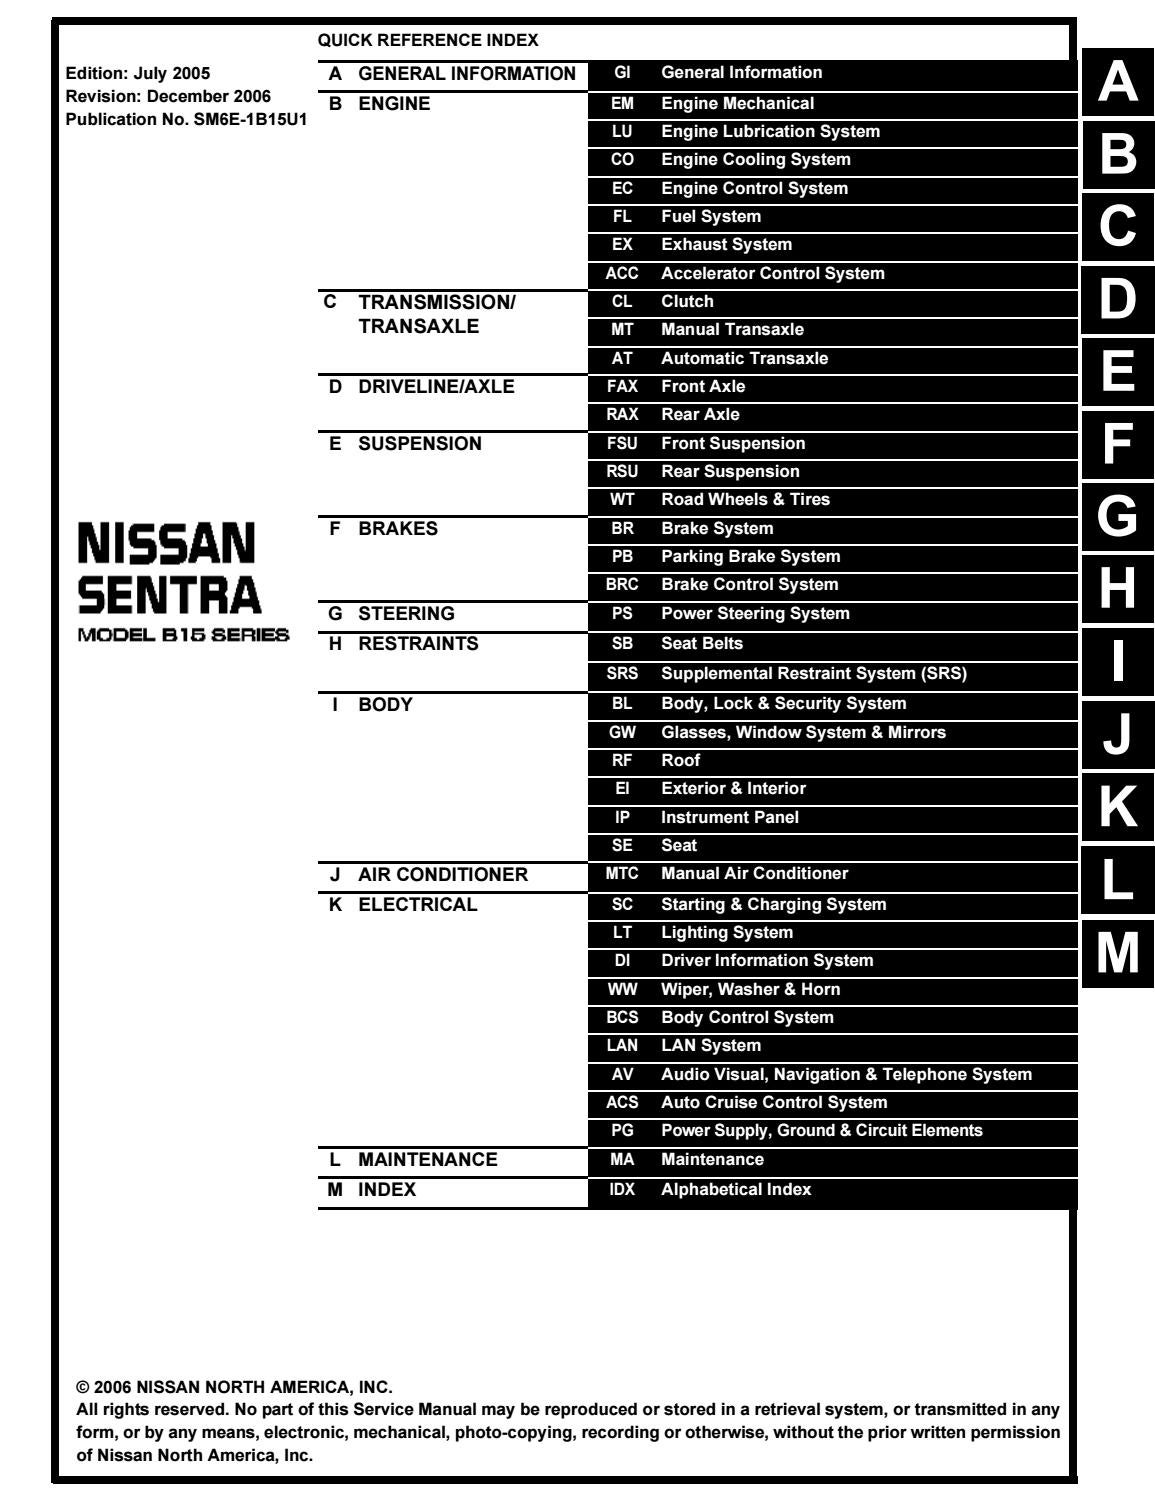 2006 Nissan Sentra Service Repair Manual By 1639463 Issuu